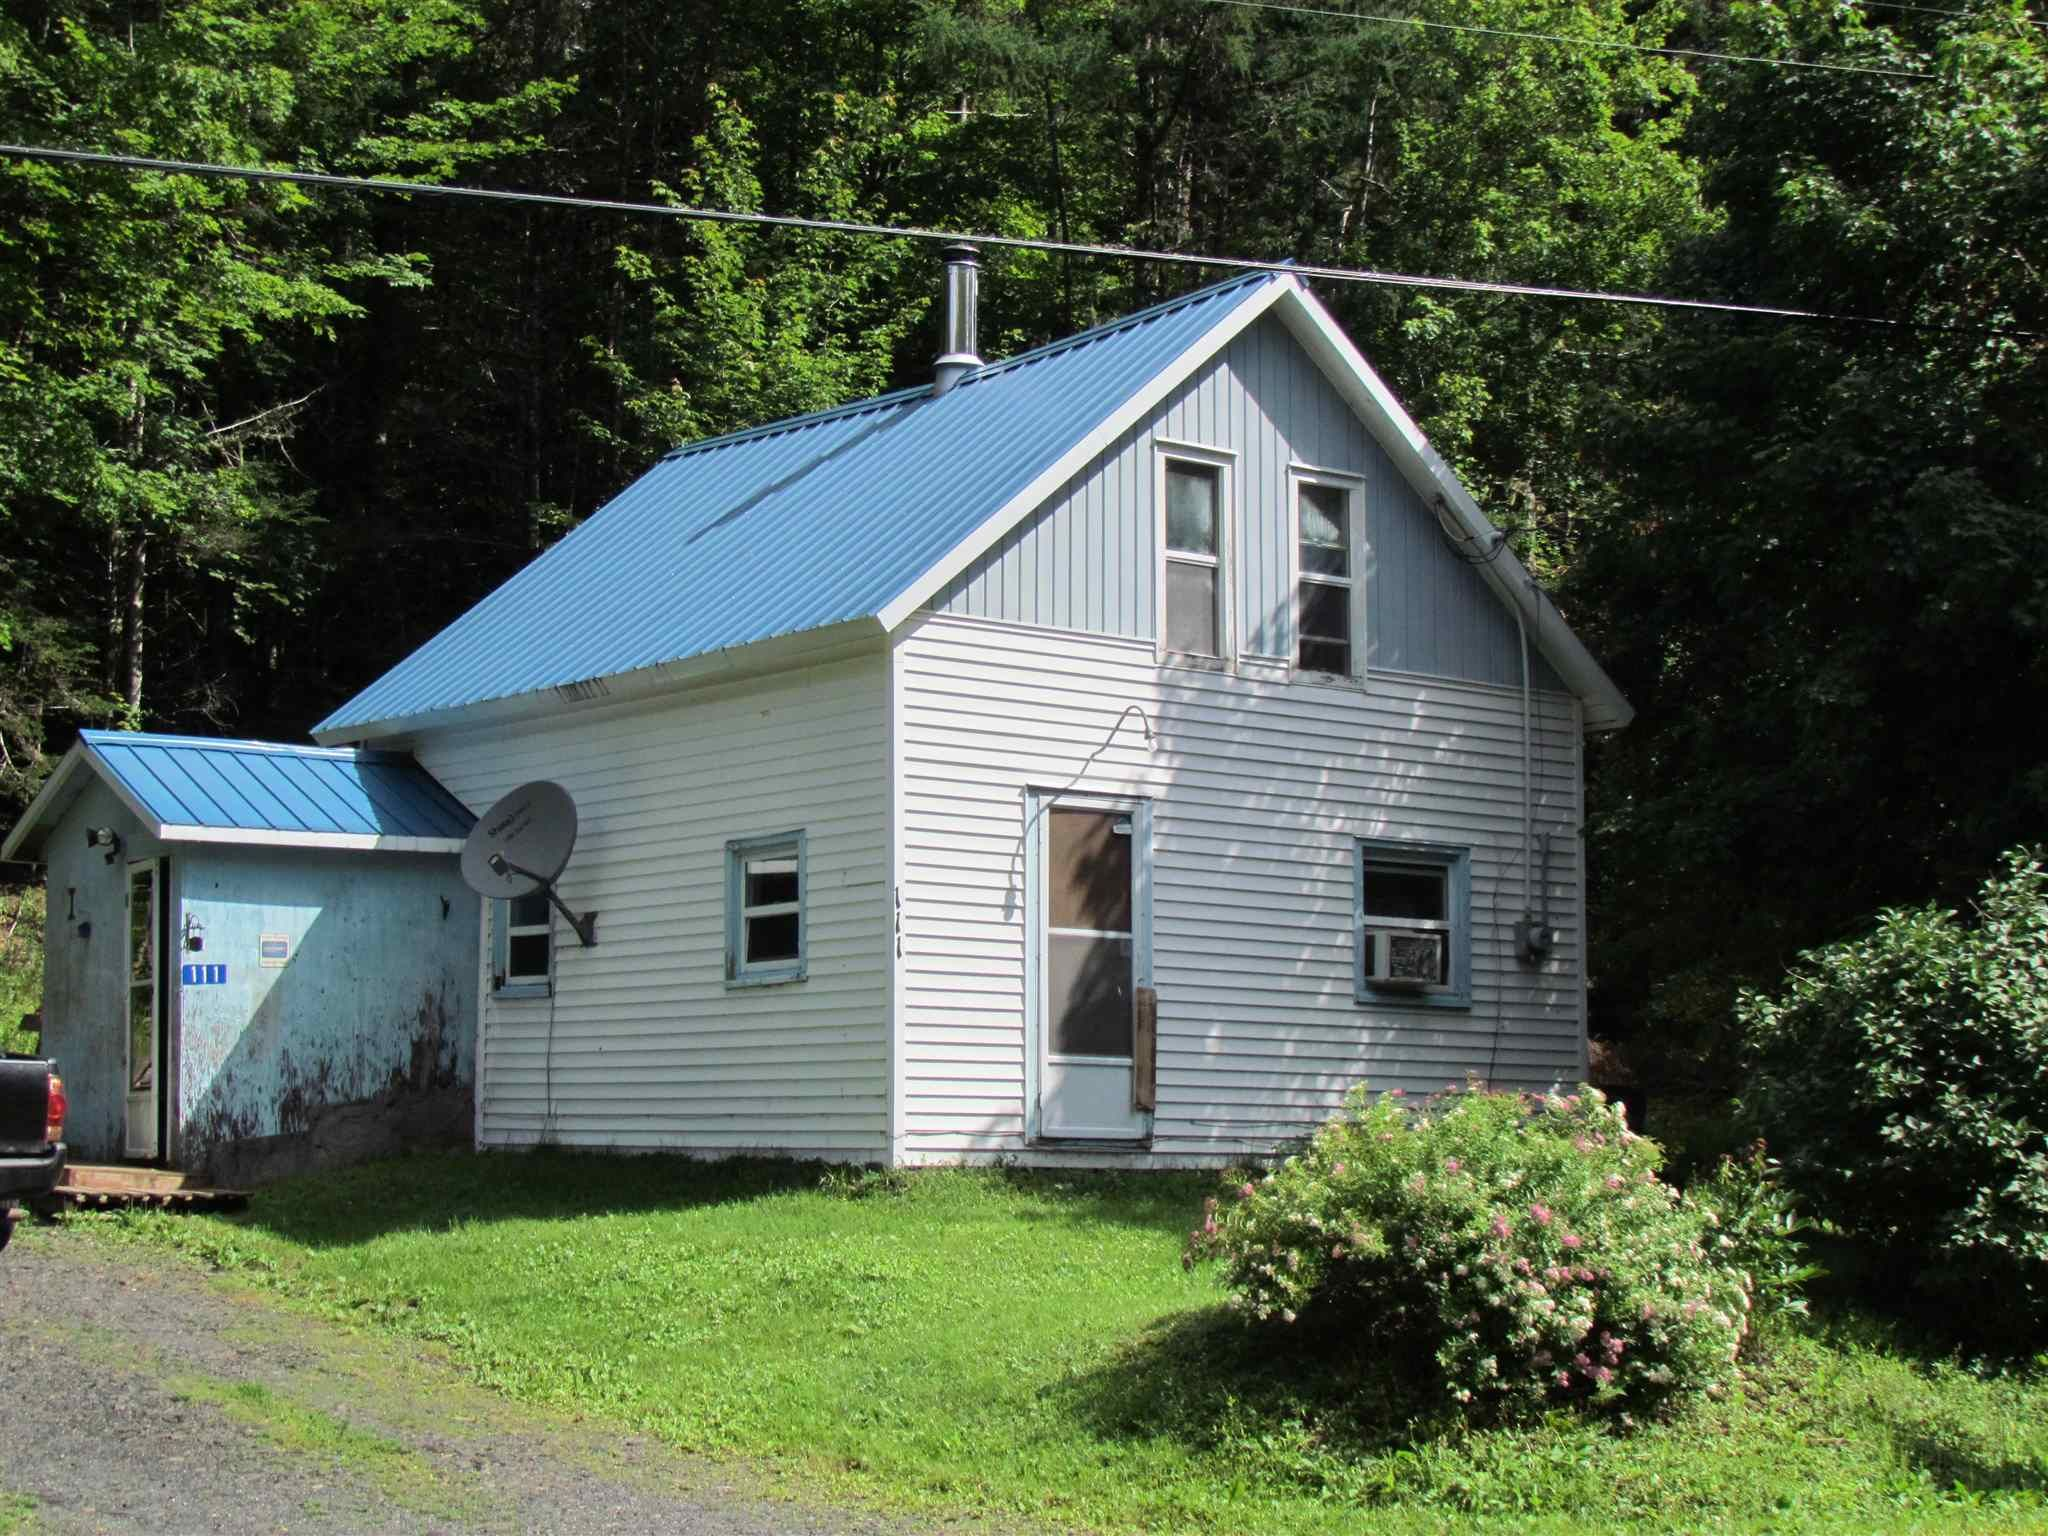 Main Photo: 111 Woodside Road in Dean: 35-Halifax County East Residential for sale (Halifax-Dartmouth)  : MLS®# 202119535